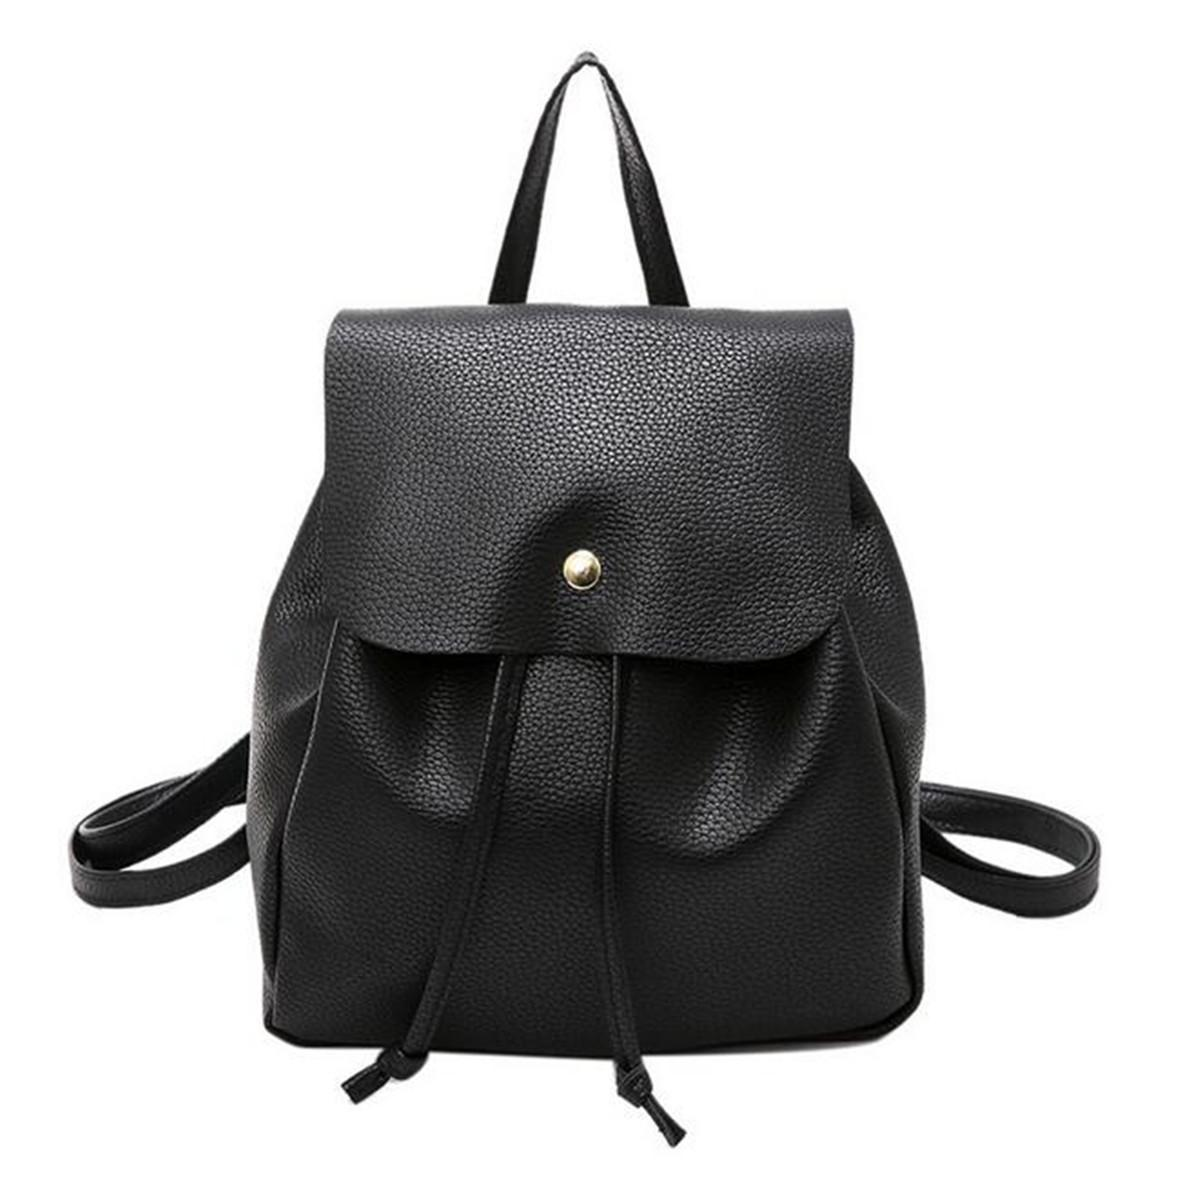 Women PU Leather Girl Backpack Travel Handbag Rucksack Shoulder School Bag  Tote  black 6fe84311a2